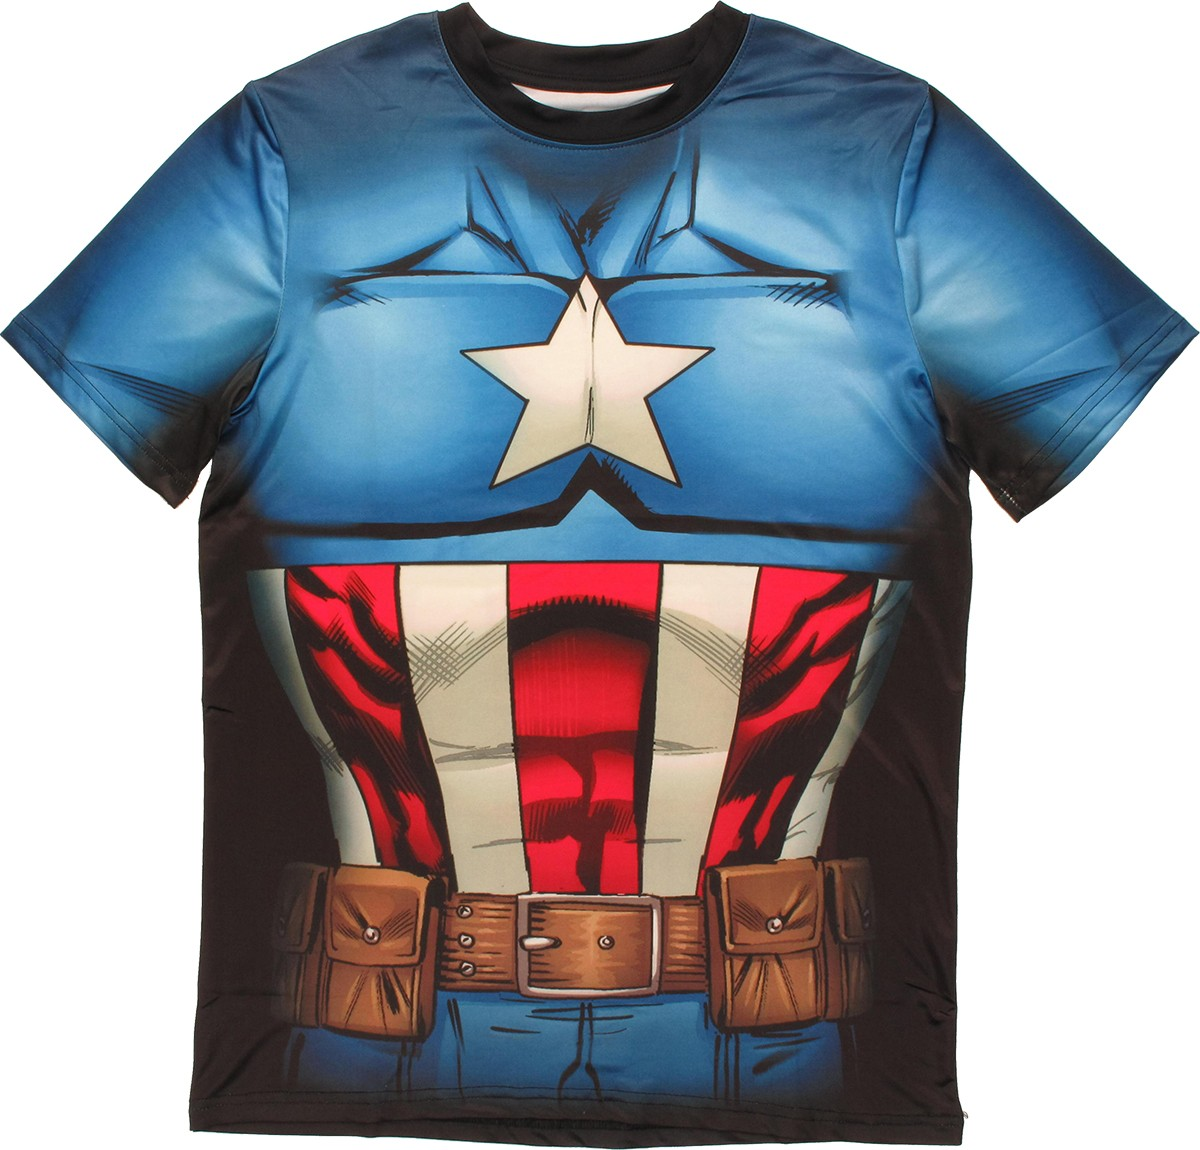 Captain america sublimated costume t shirt sheer for Costume t shirts online